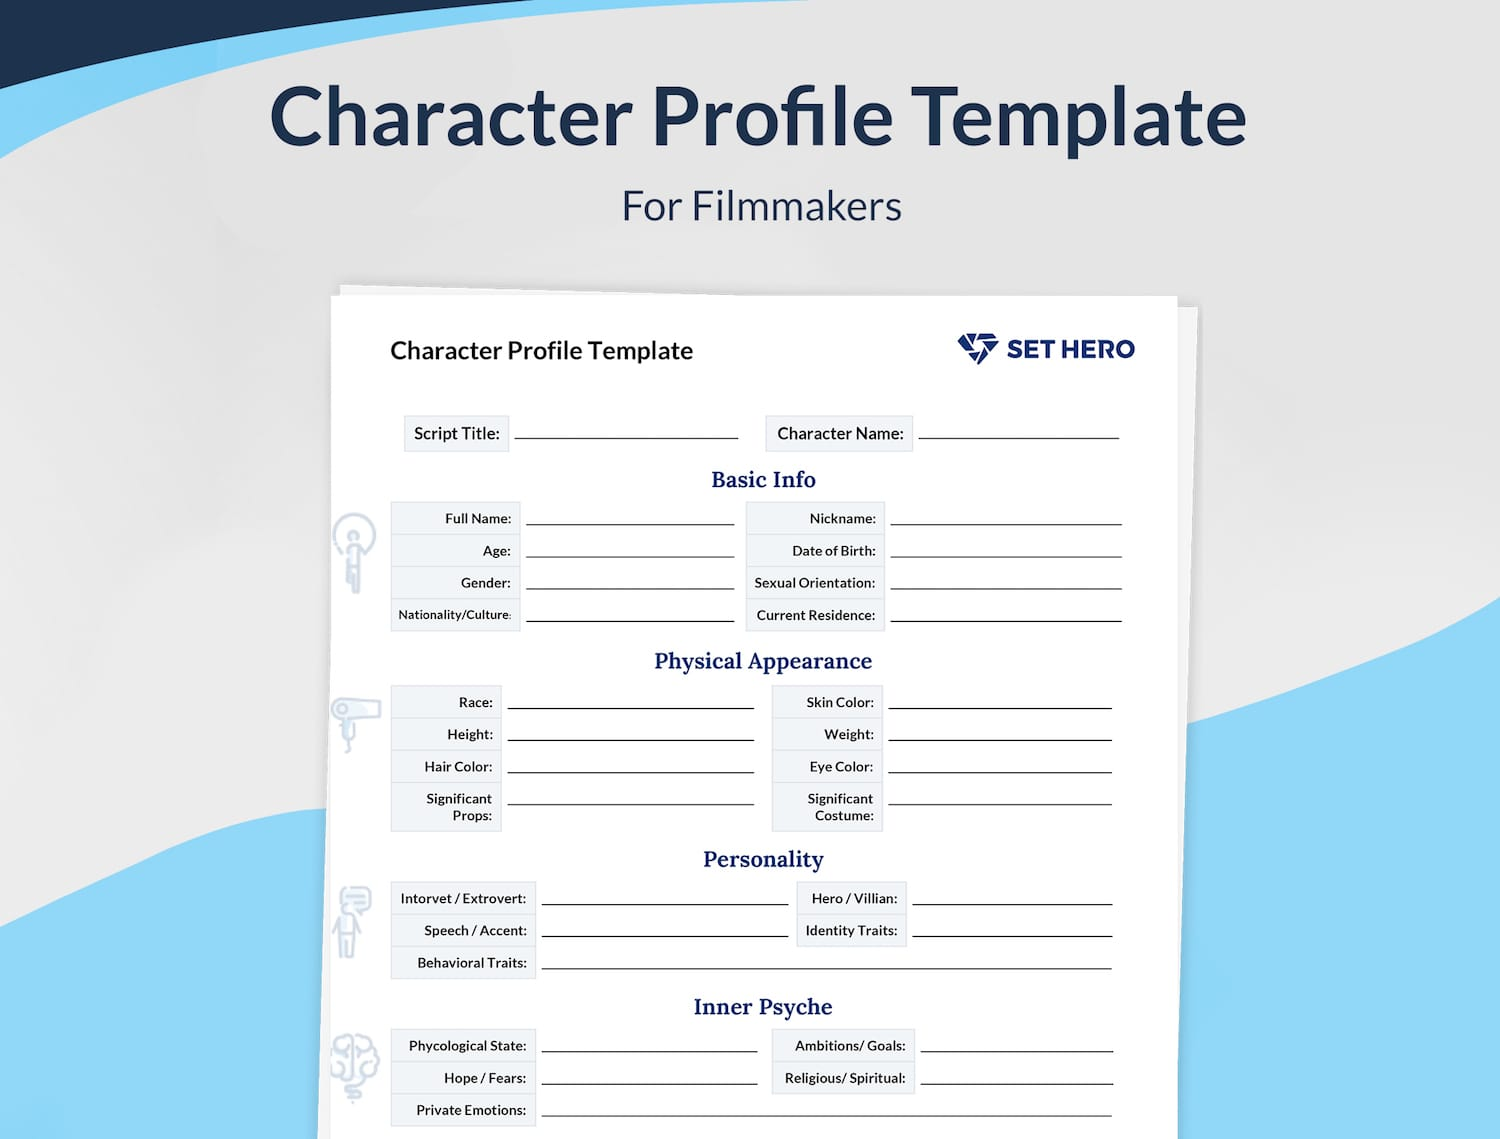 Character Profile Template for Filmmakers Preview